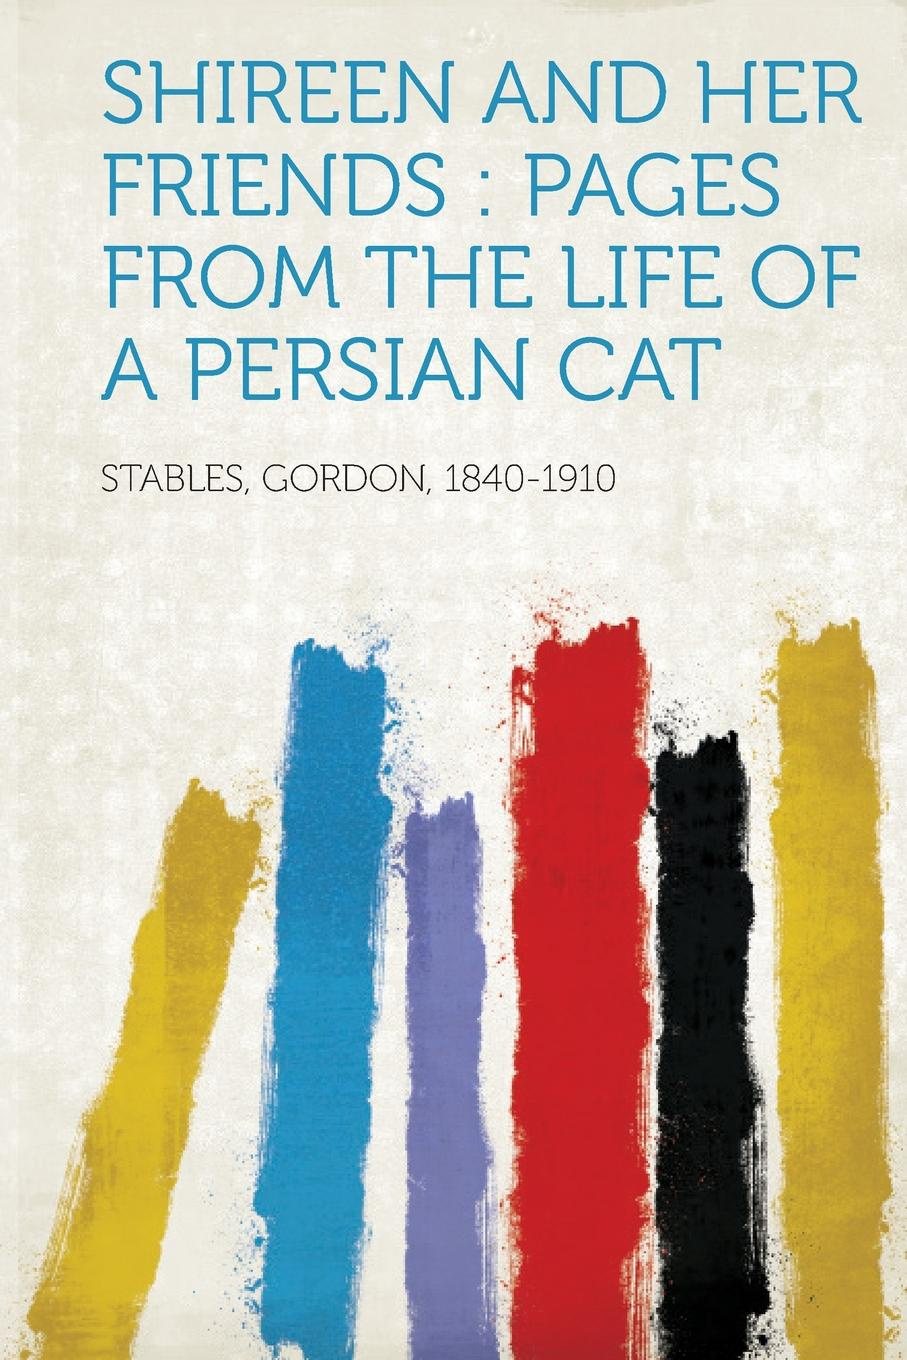 Gordon Stables Shireen and Her Friends. Pages from the Life of a Persian Cat stables gordon shireen and her friends pages from the life of a persian cat